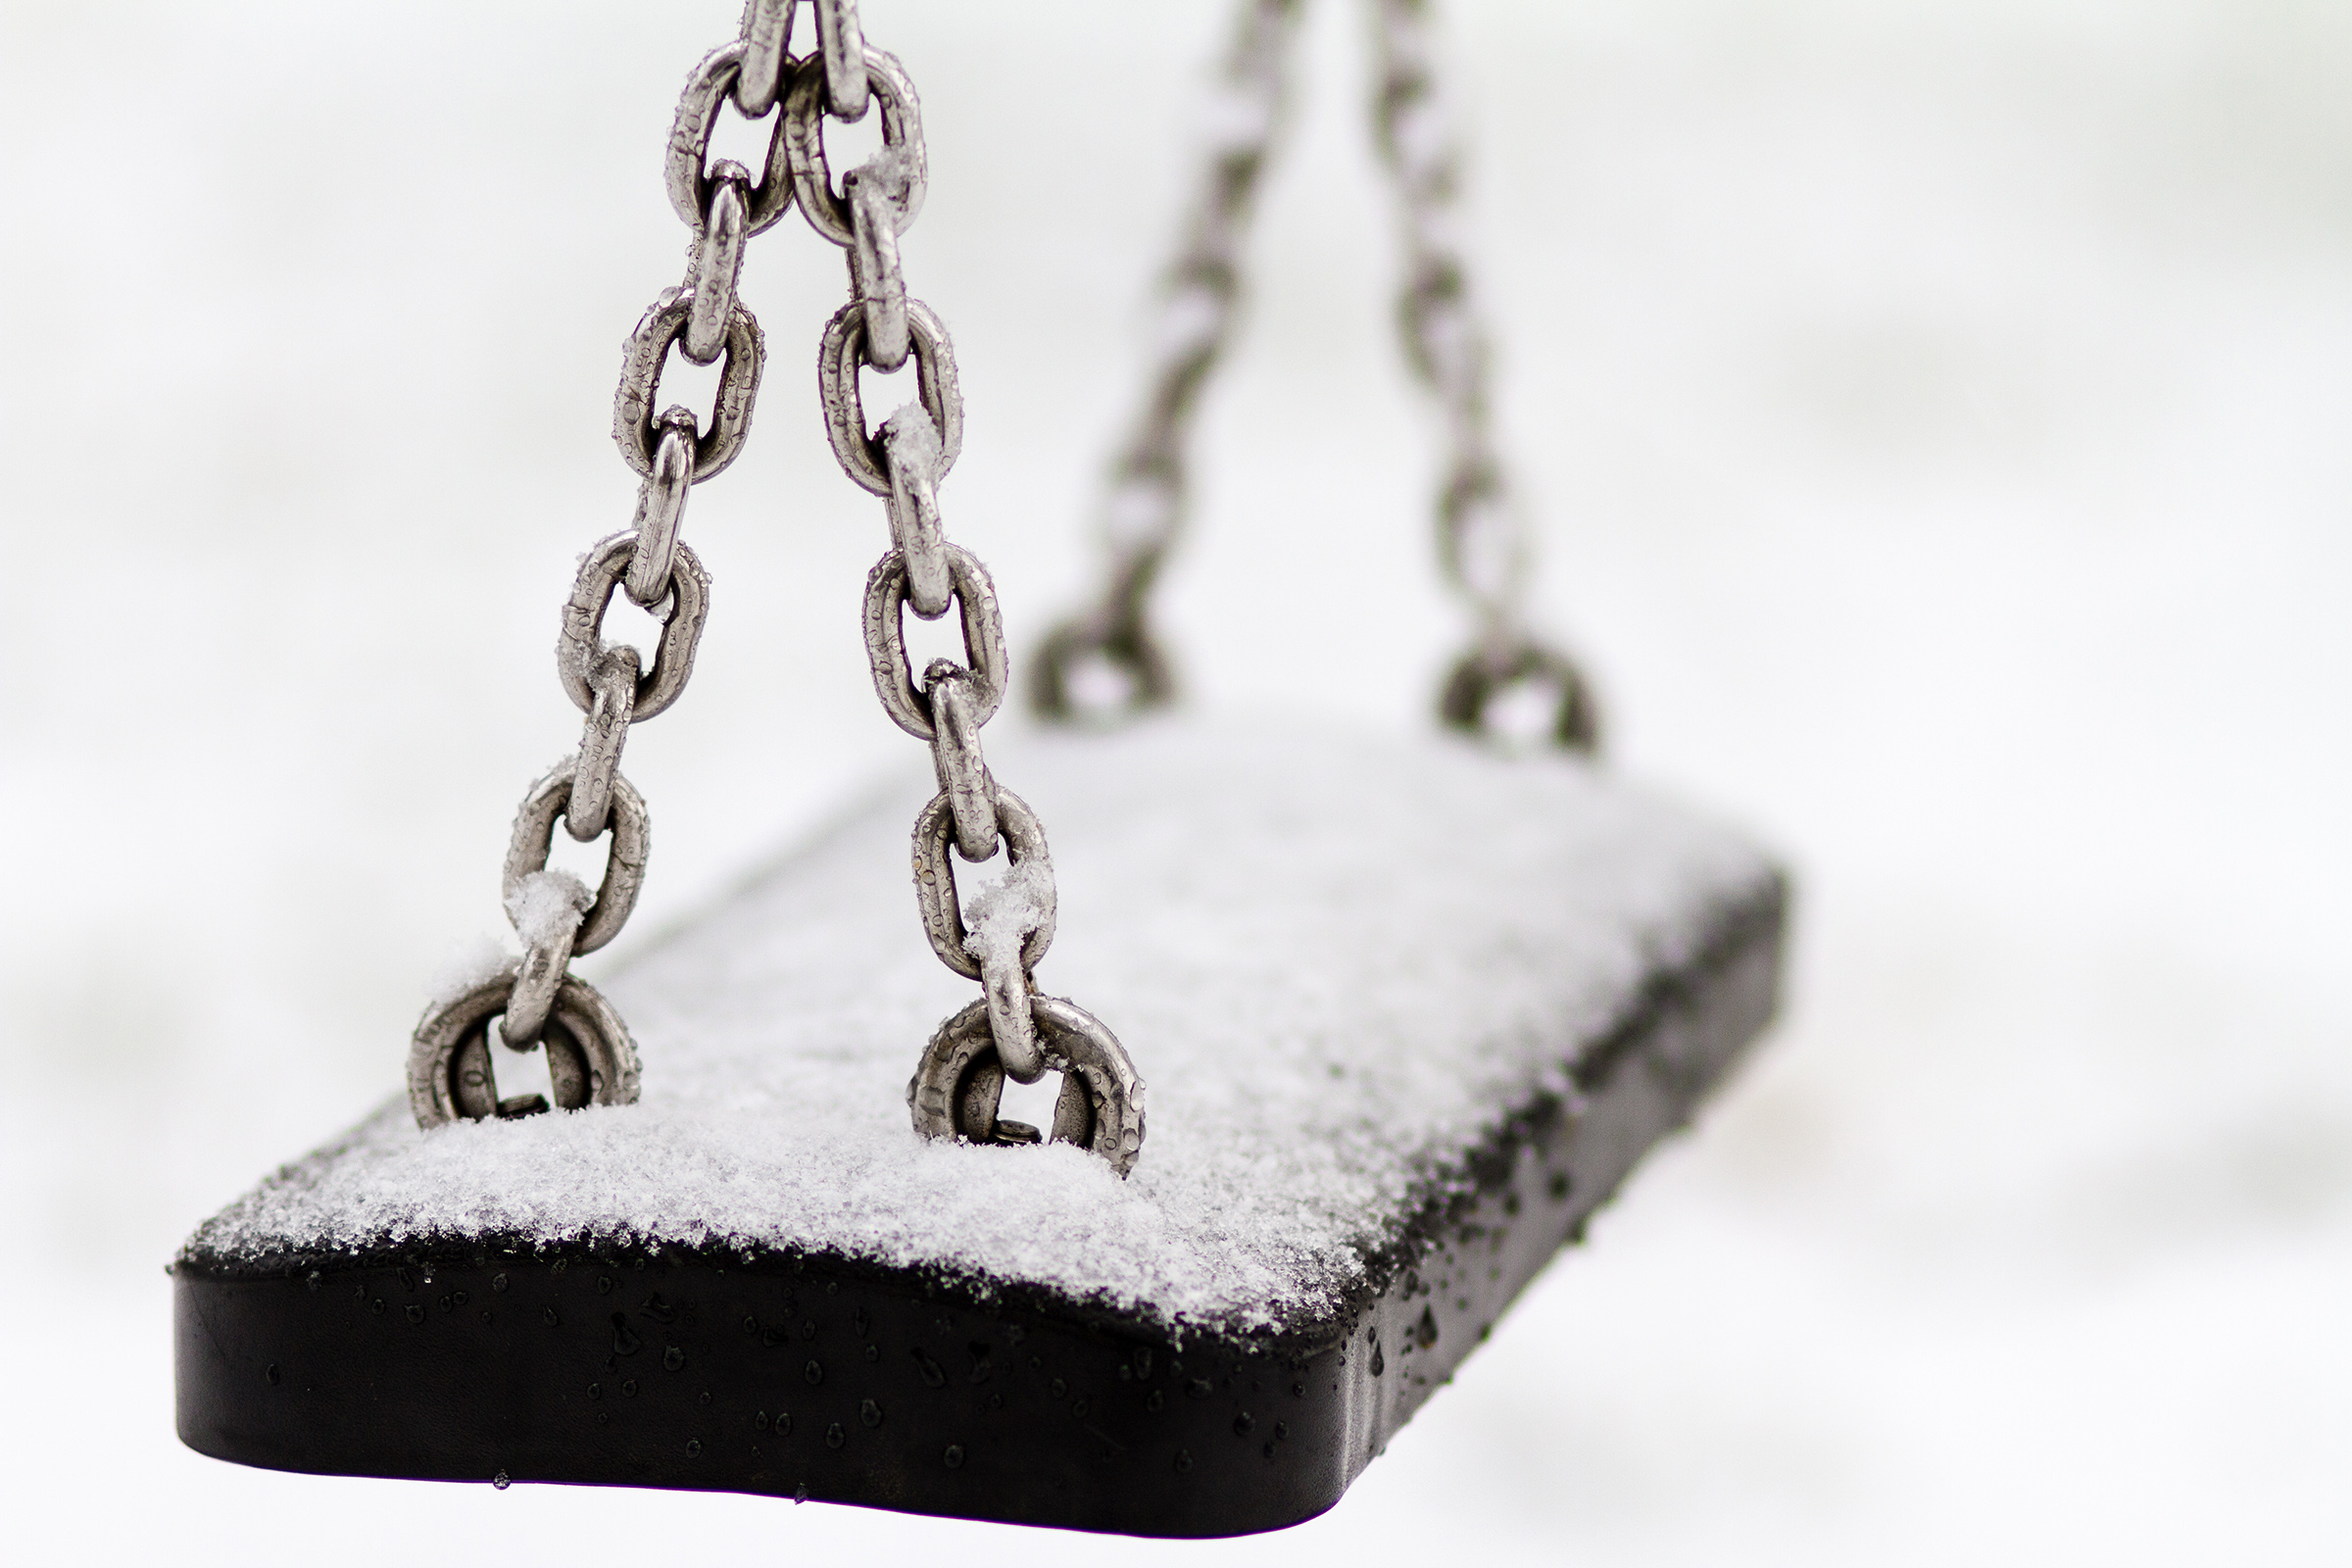 ice, winter, outdoor, still life, swing, snow, cold, playground © André Schunert